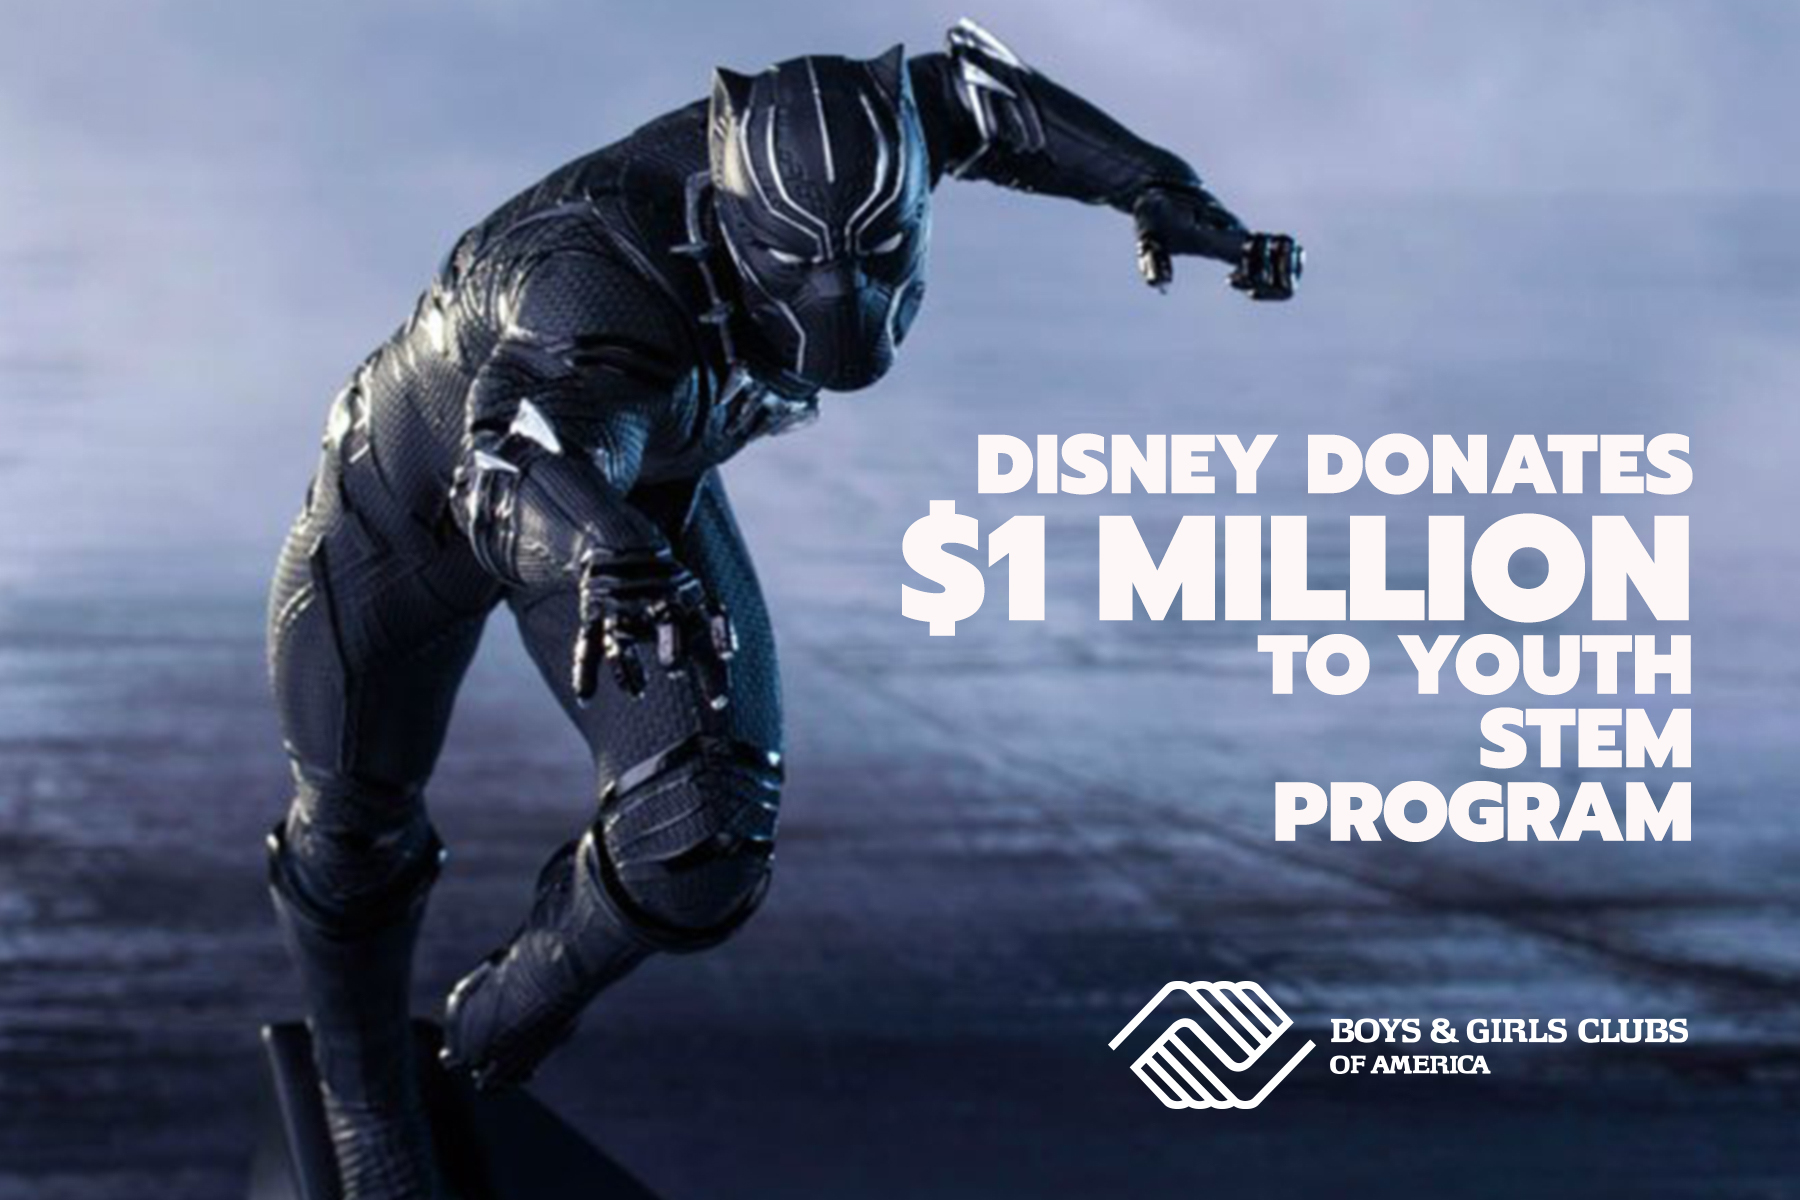 Disney Donates $1 Million to Youth STEM Program in Celebration of BLACK PANTHER